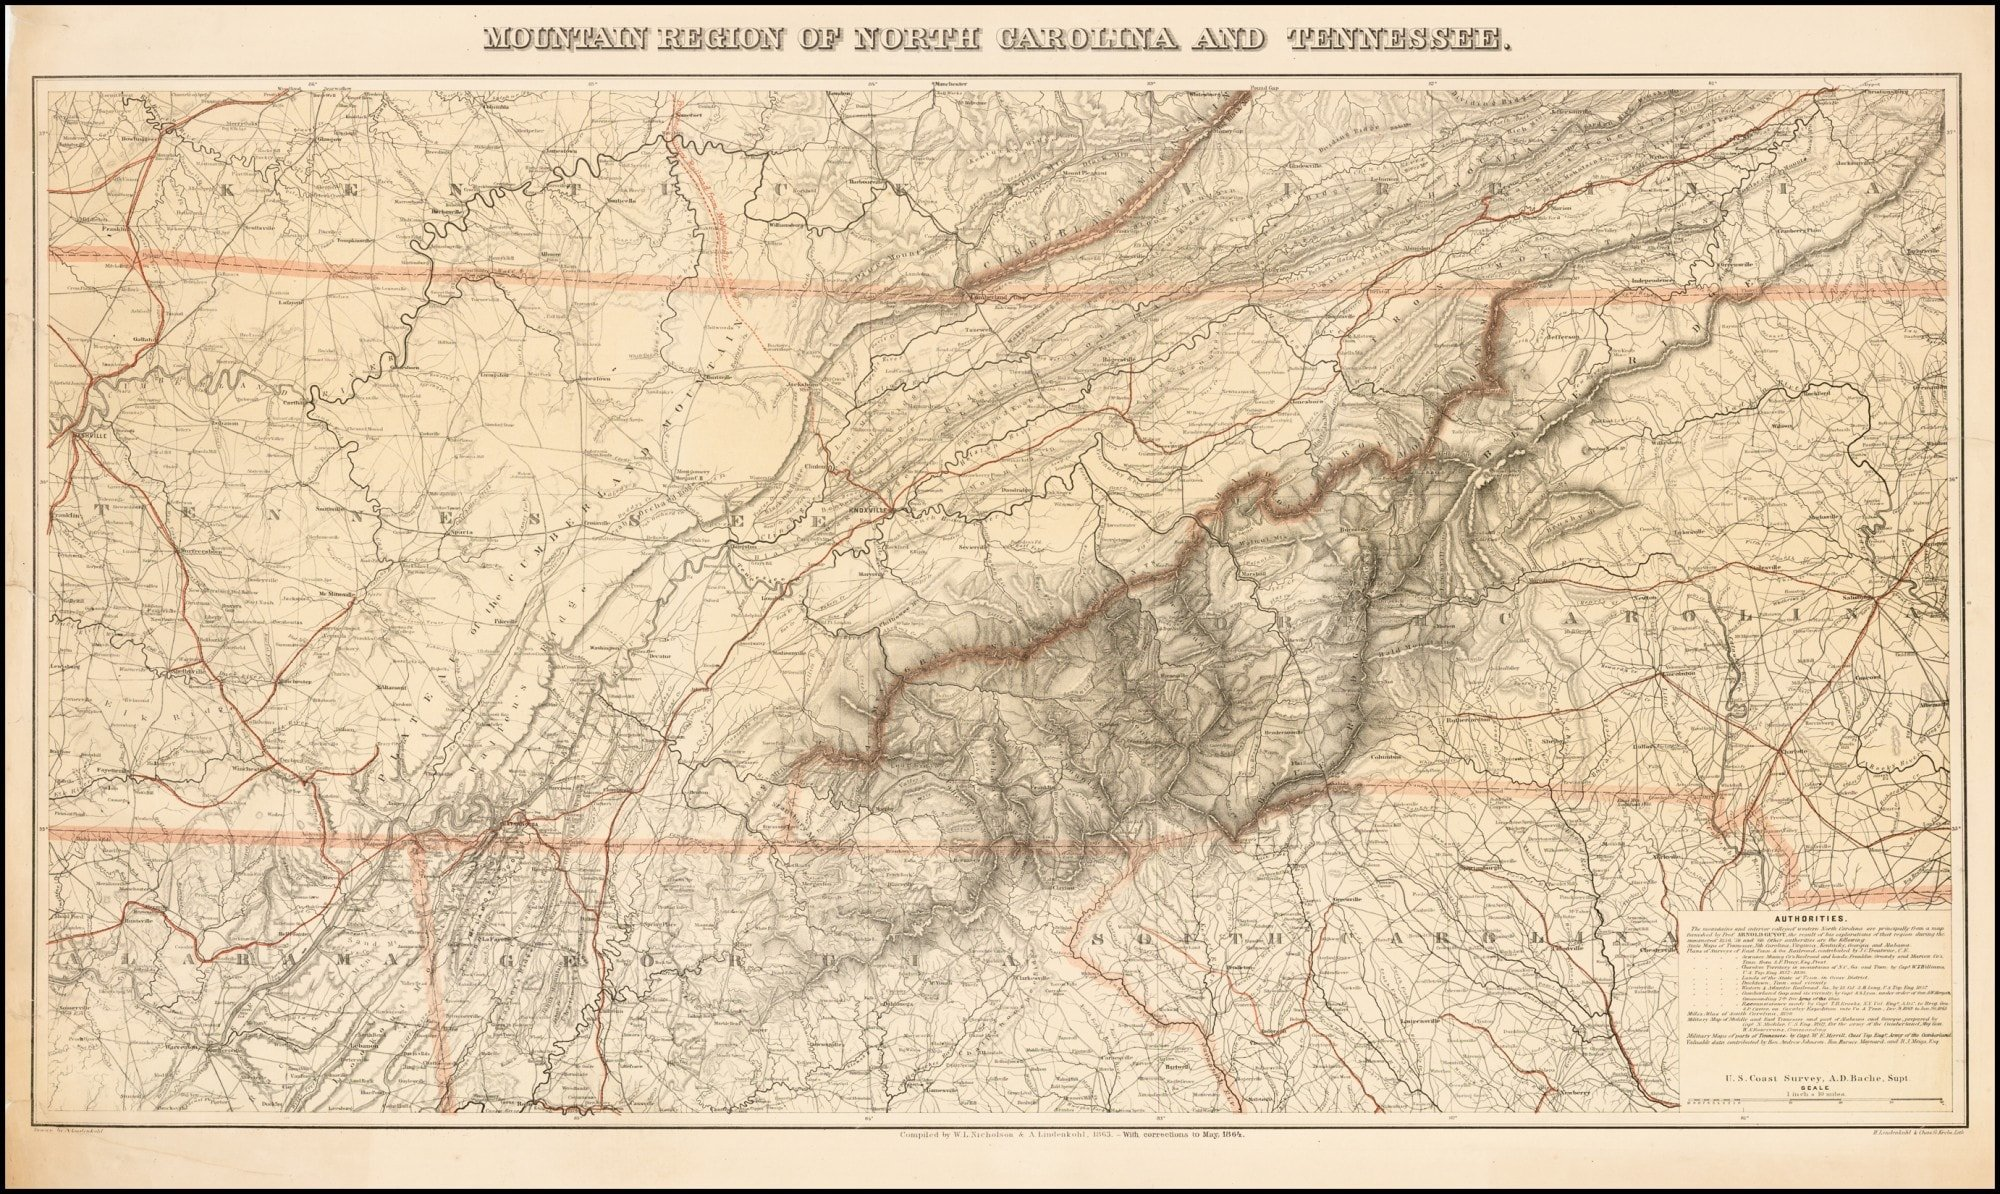 Exceptional Map Of North Carolina And Tennessee Prepared For The